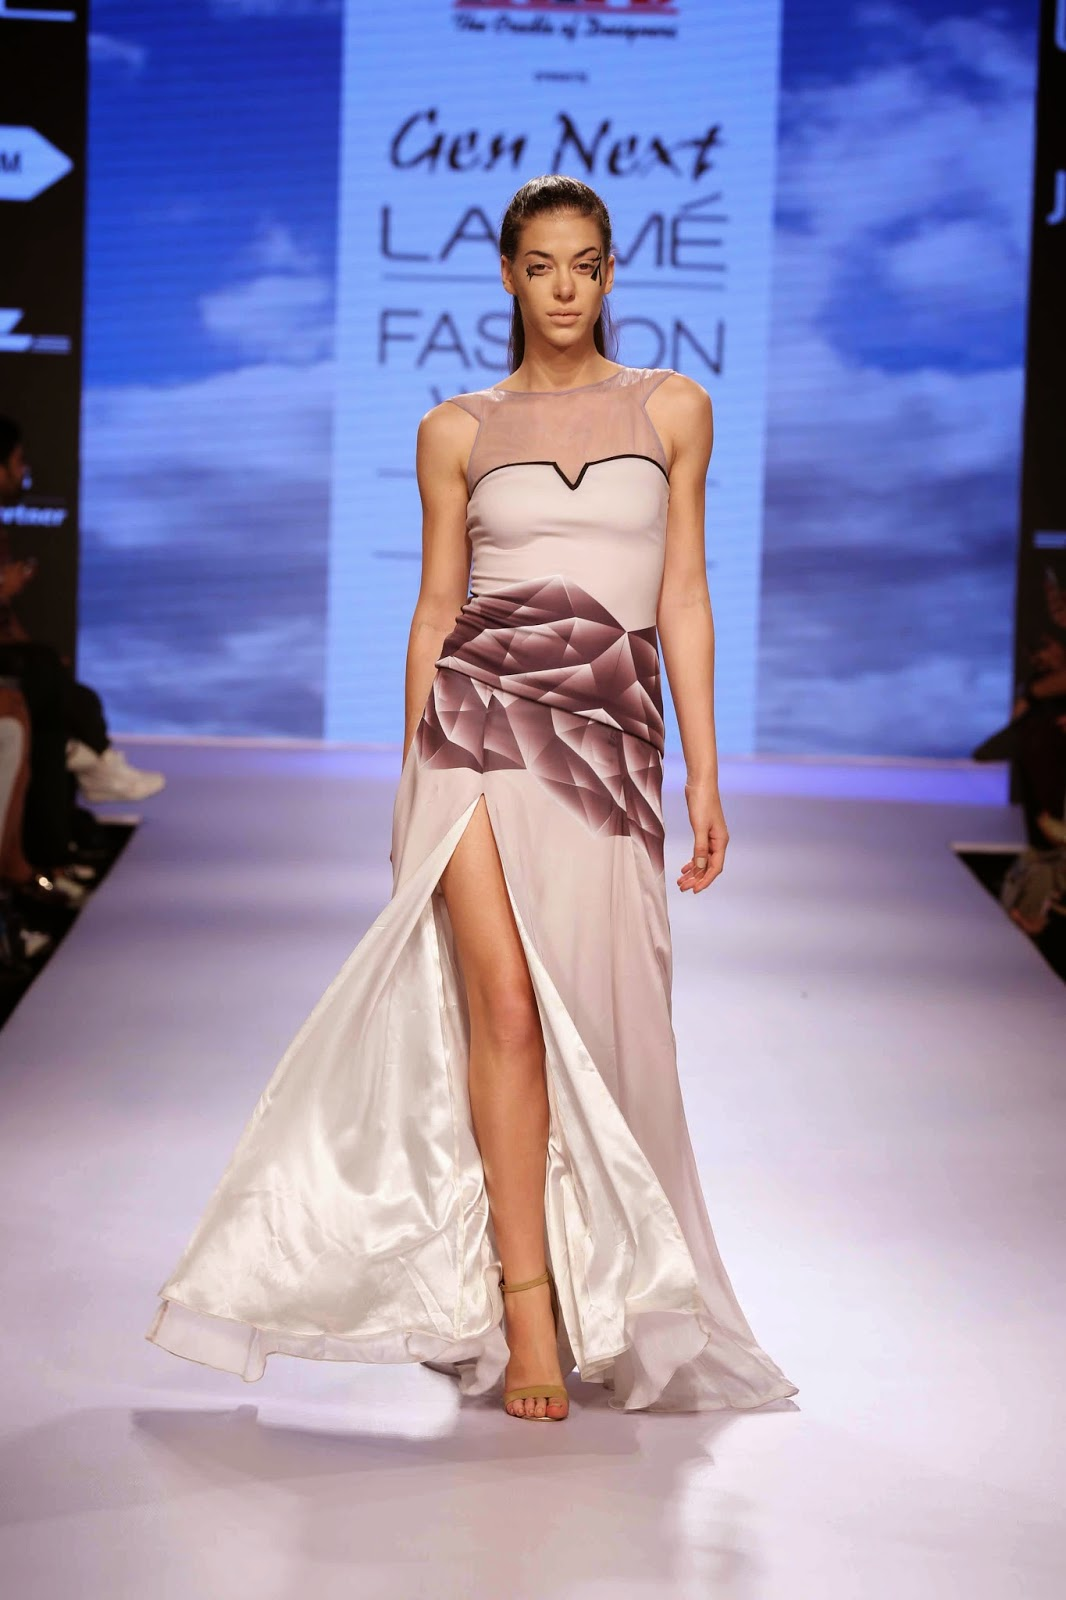 http://aquaintperspective.blogspot.in/, LIFW day 1 ,Kanika Goyal